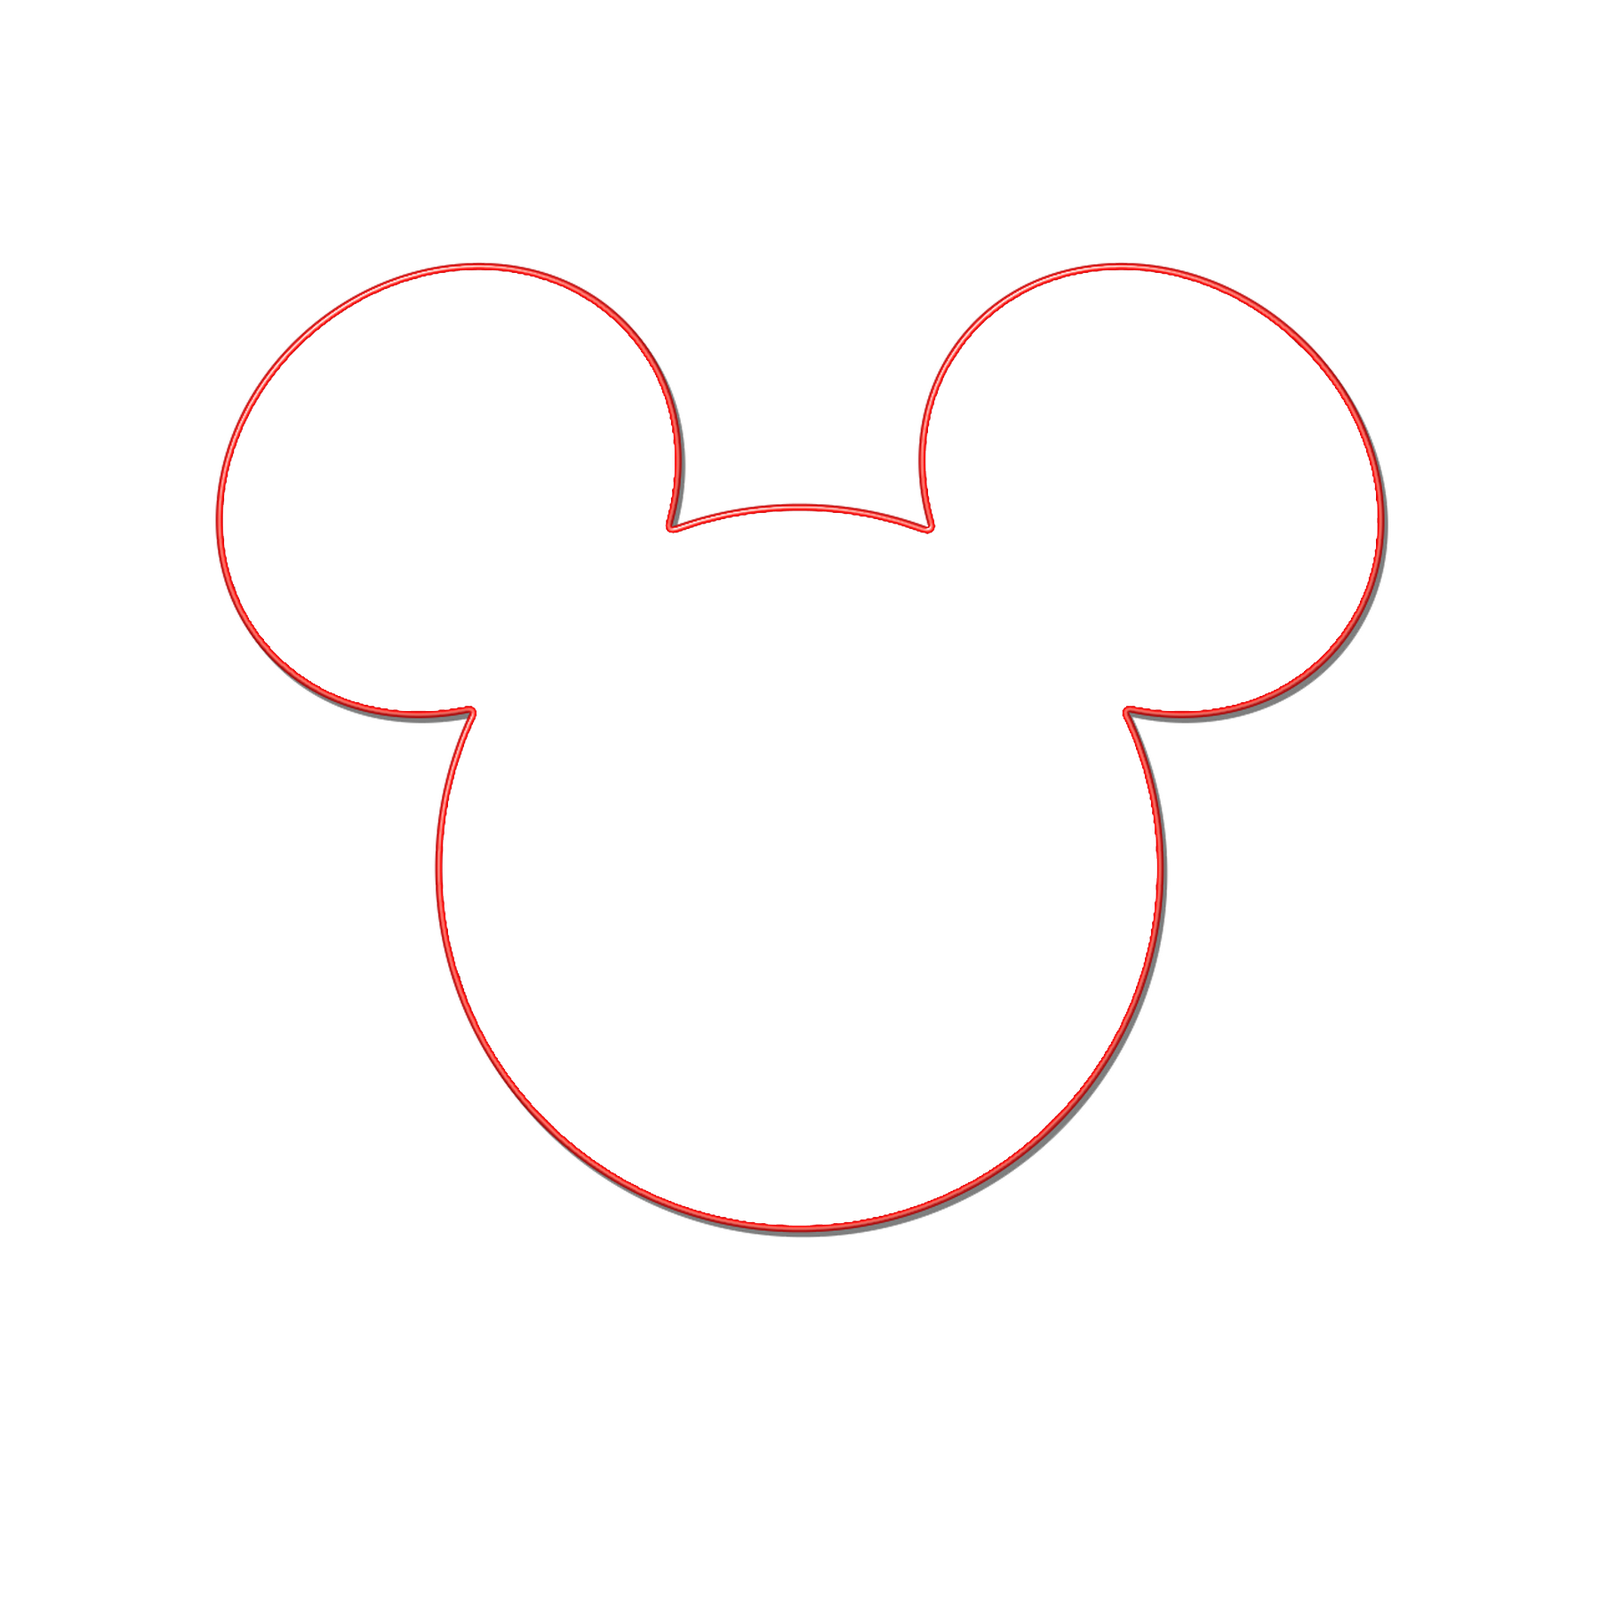 36 Mickey Mouse Ears Clip Art   Free Cliparts That You Can Download To